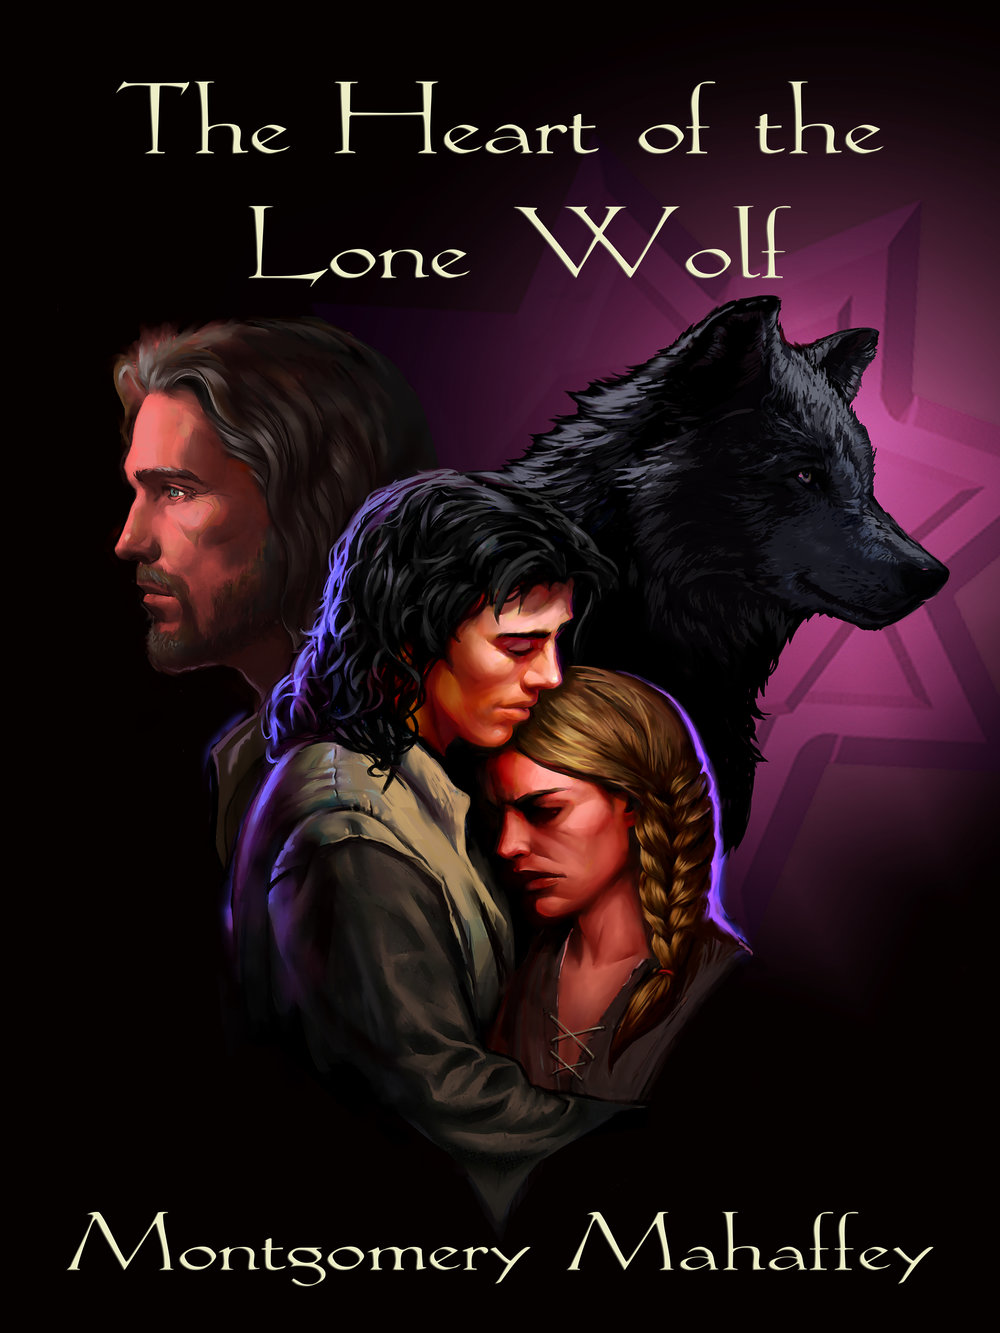 Heart of the Lone Wolf poster.jpg